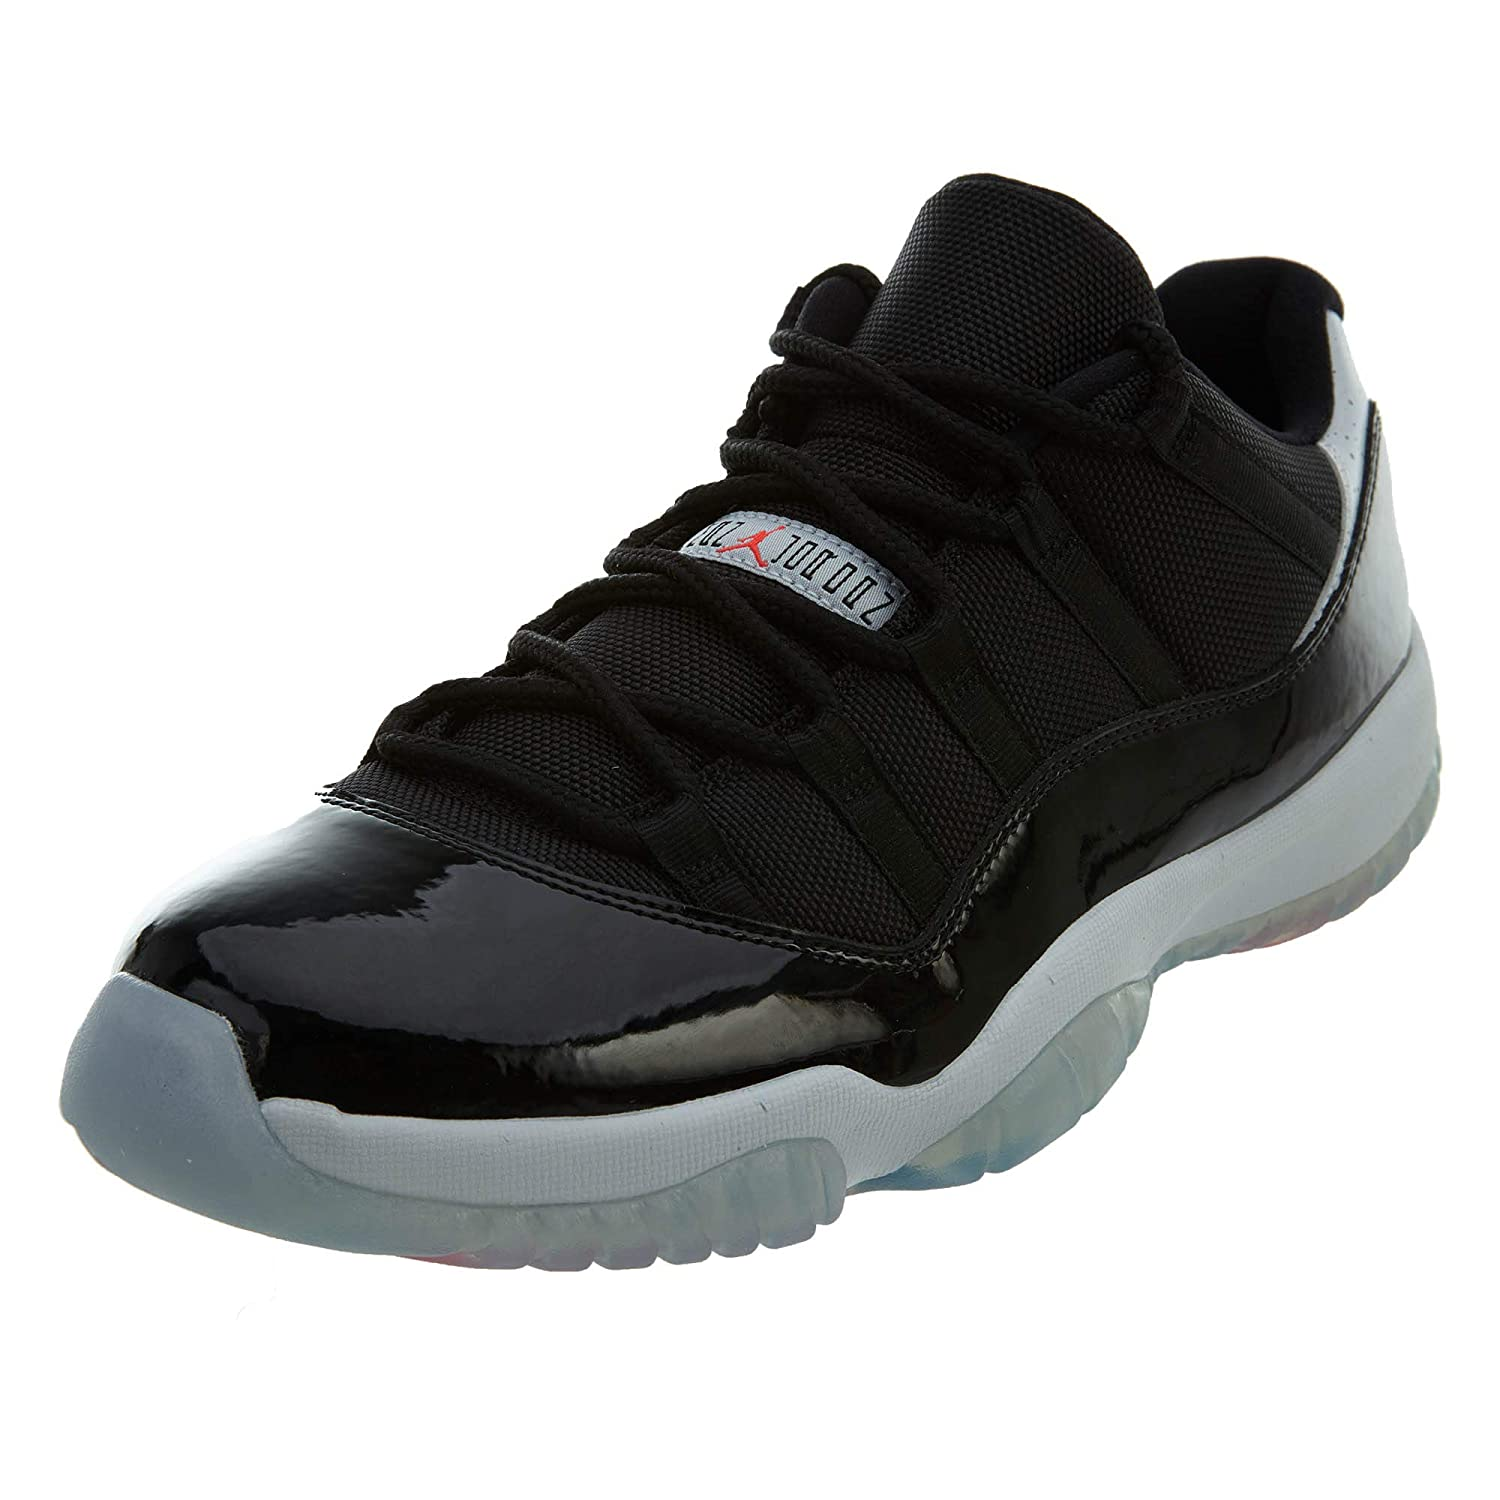 sports shoes 51aaa fe3a8 Jordan Air Retro 11 Low Men's Shoes Black/Infrared-Pure Platinum 528895-023